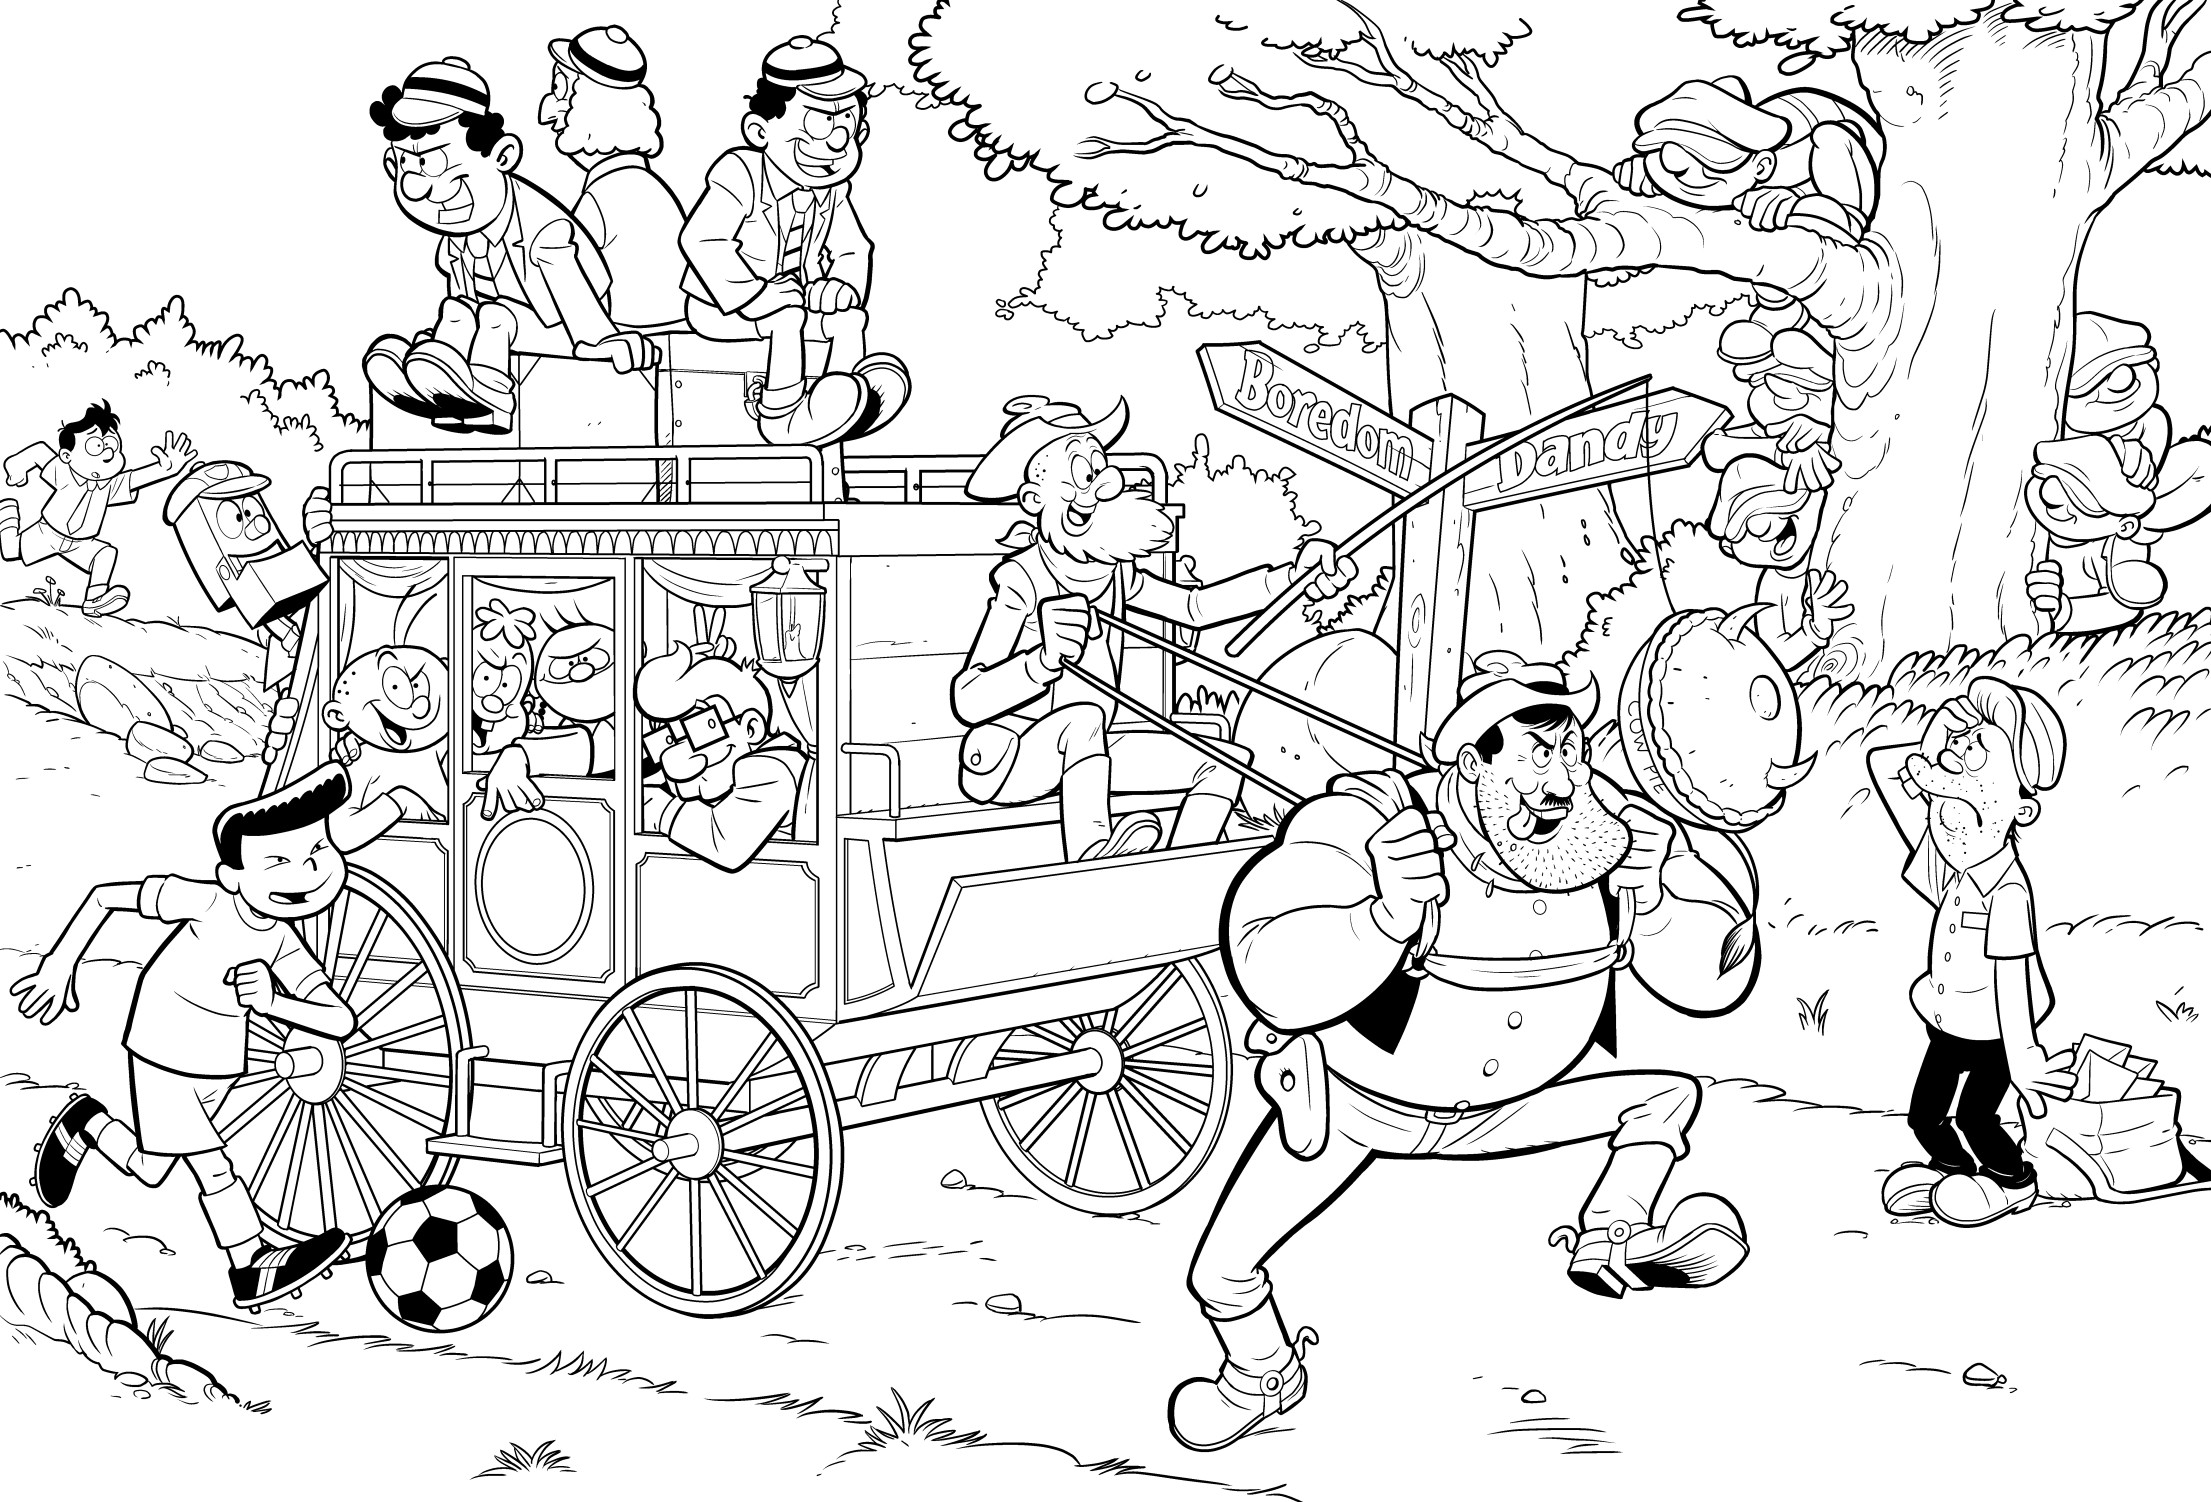 The Dandy Annual - Endpaper 01 : inks (note this is before Desperate Dan's face is fixed)